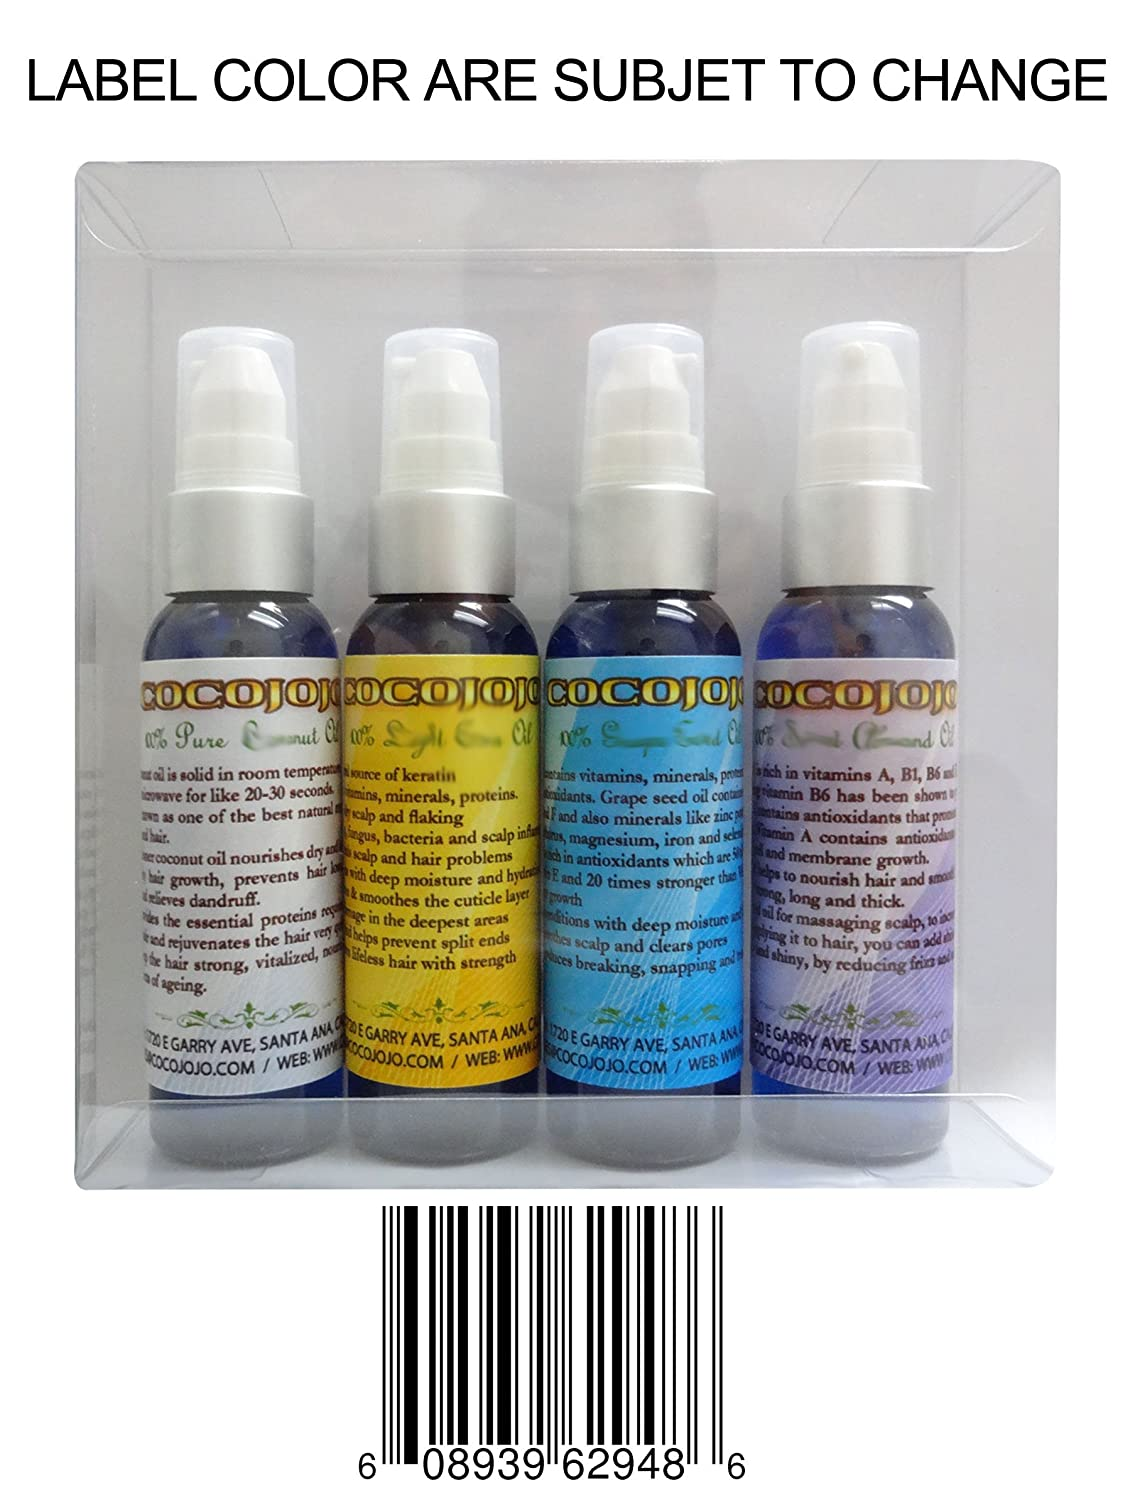 Hair Treatment Kit 4 Bottles of Pure 2 Oz Emu, Grape Seed, Coconut, Neem Oil